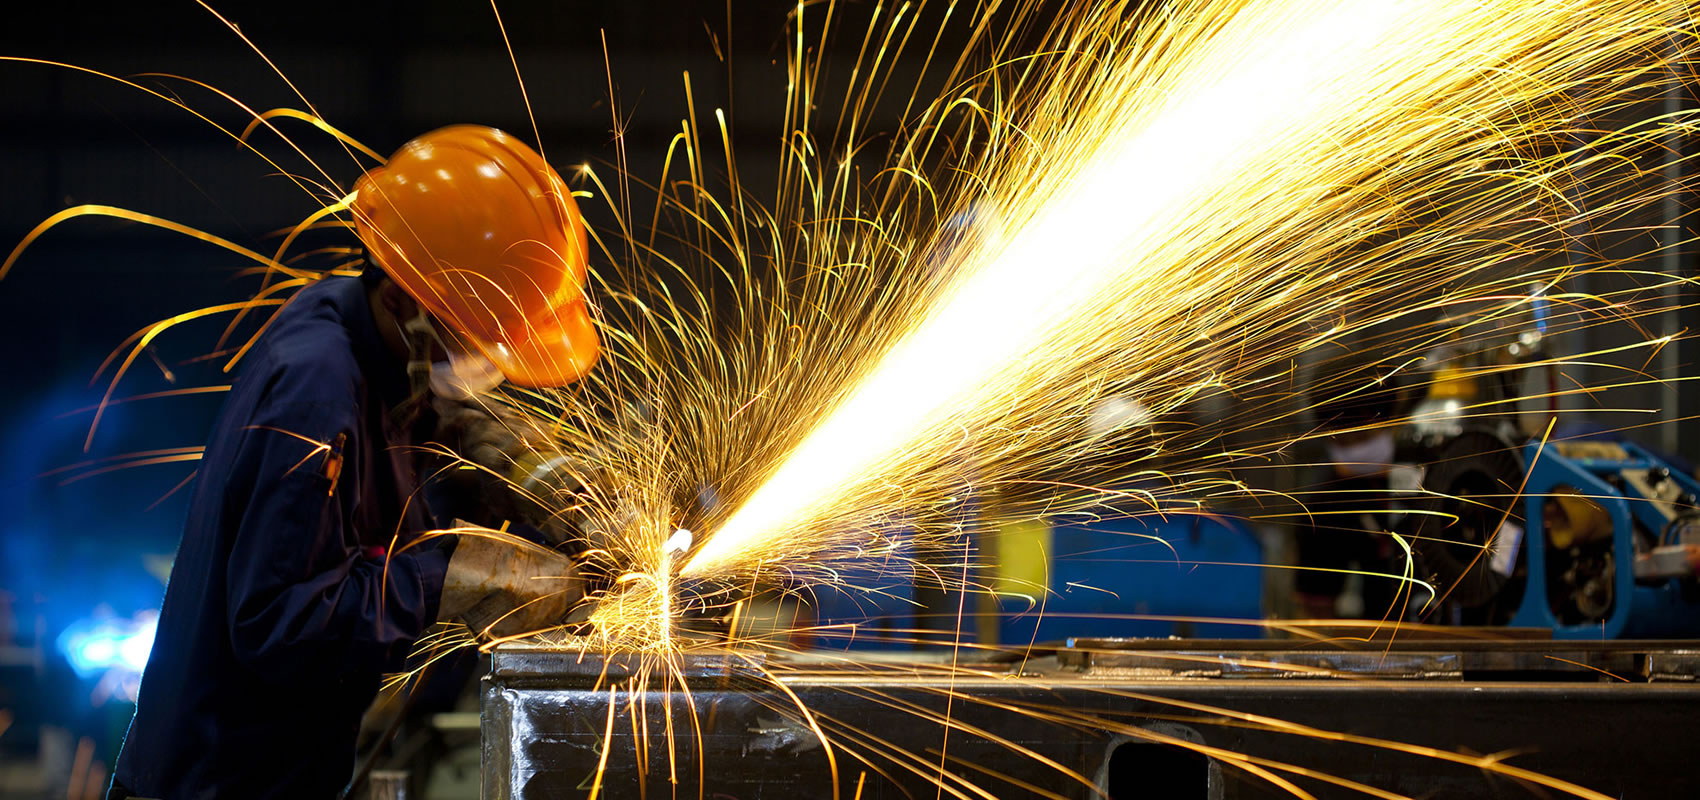 General Welding and Fabrication with OSI